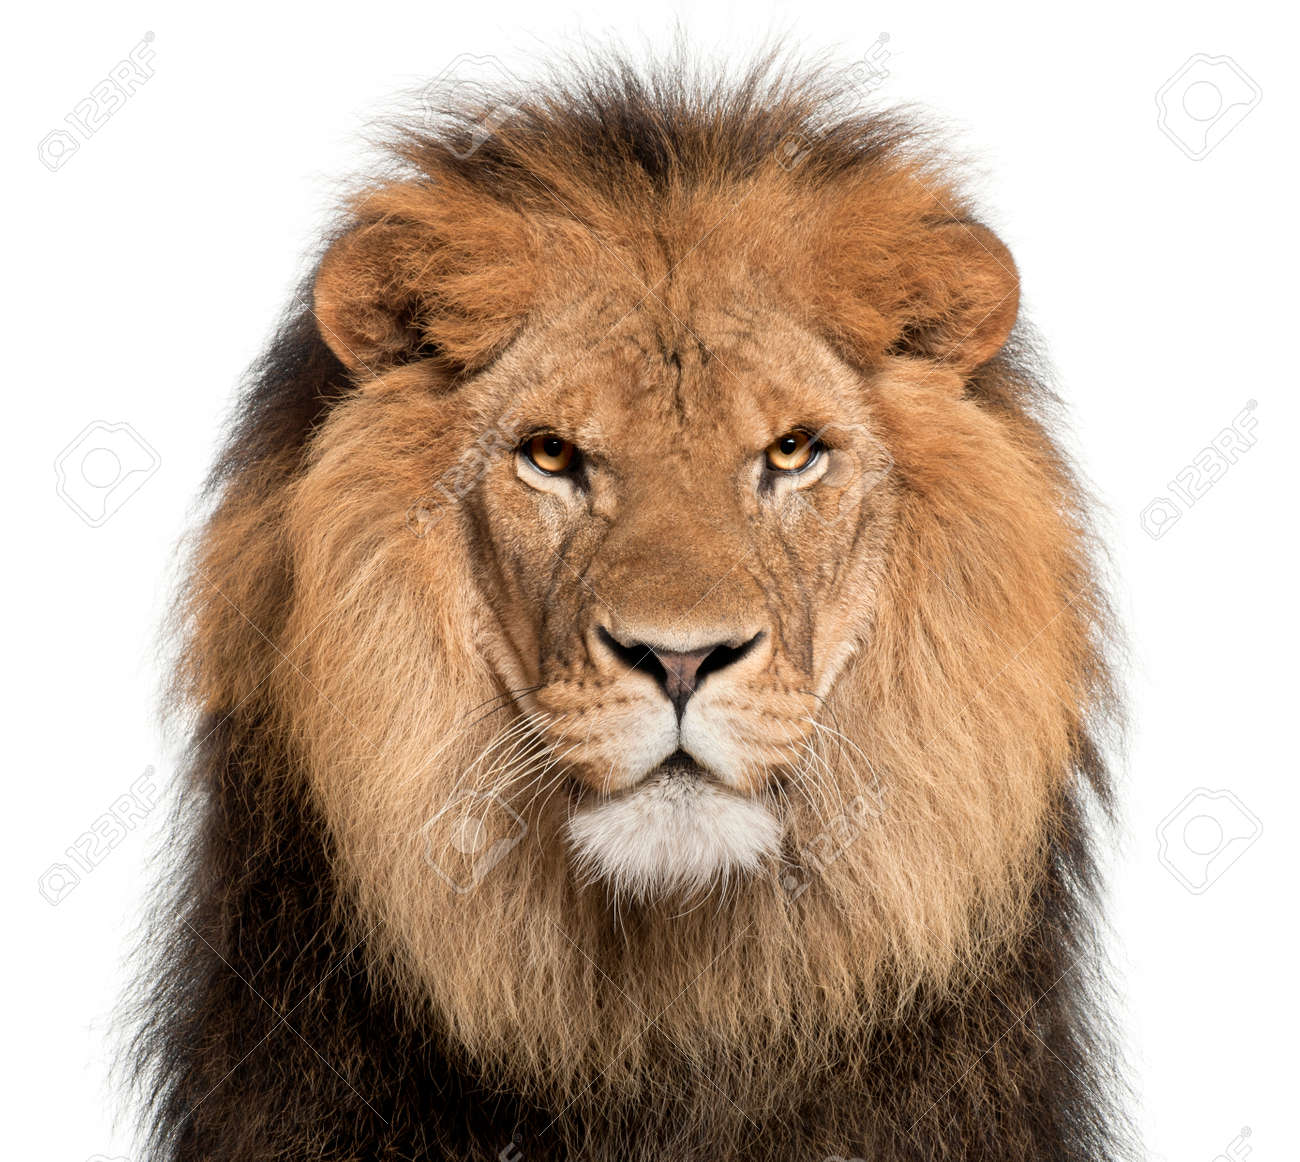 Close-up of lion, Panthera leo, 8 years old, in front of white background - 90387806